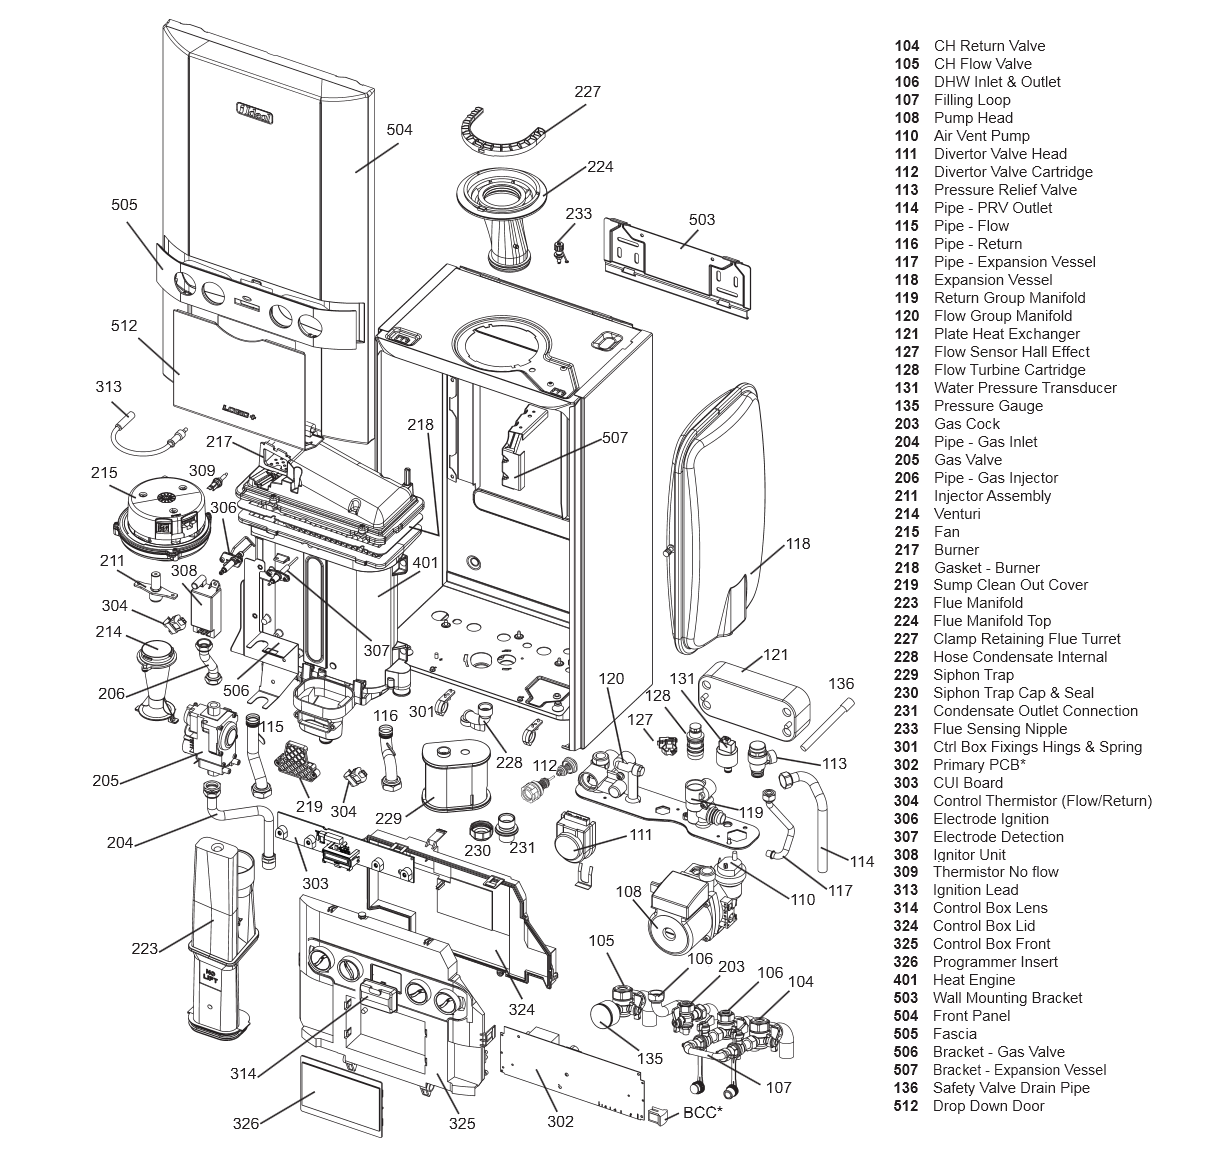 Boiler Manuals: Ideal Logic + Combi 24